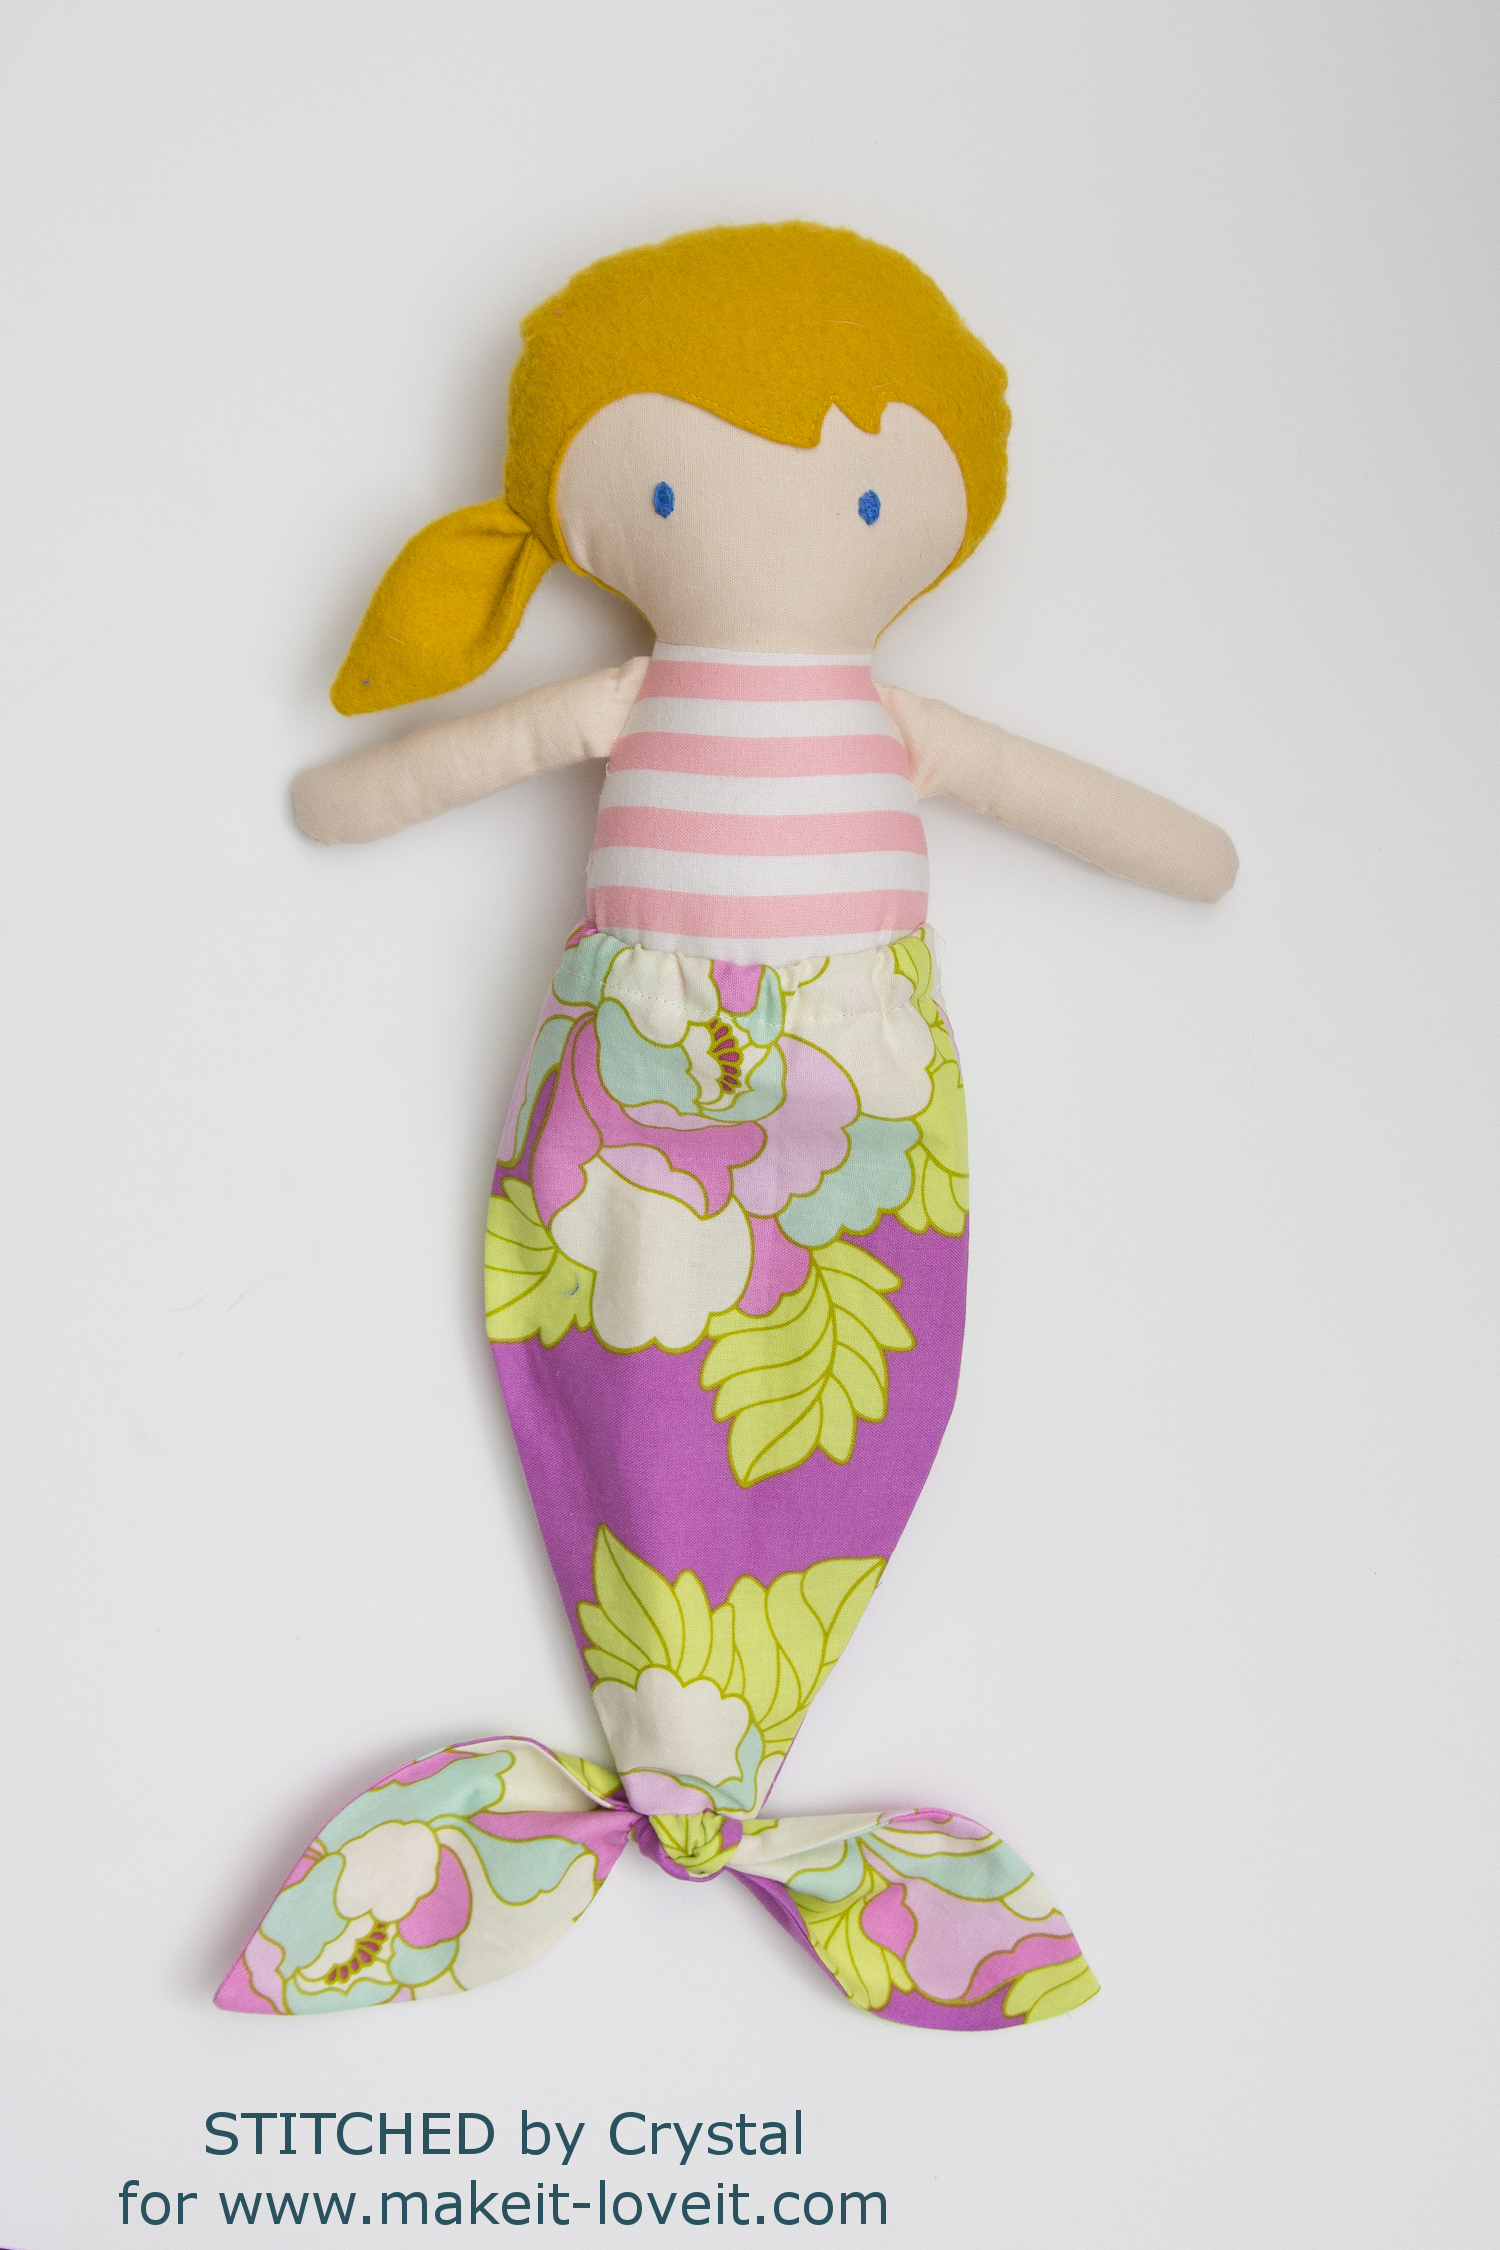 Sew a Mermaid Tail For Any Size Doll! | via makeit-loveit.com